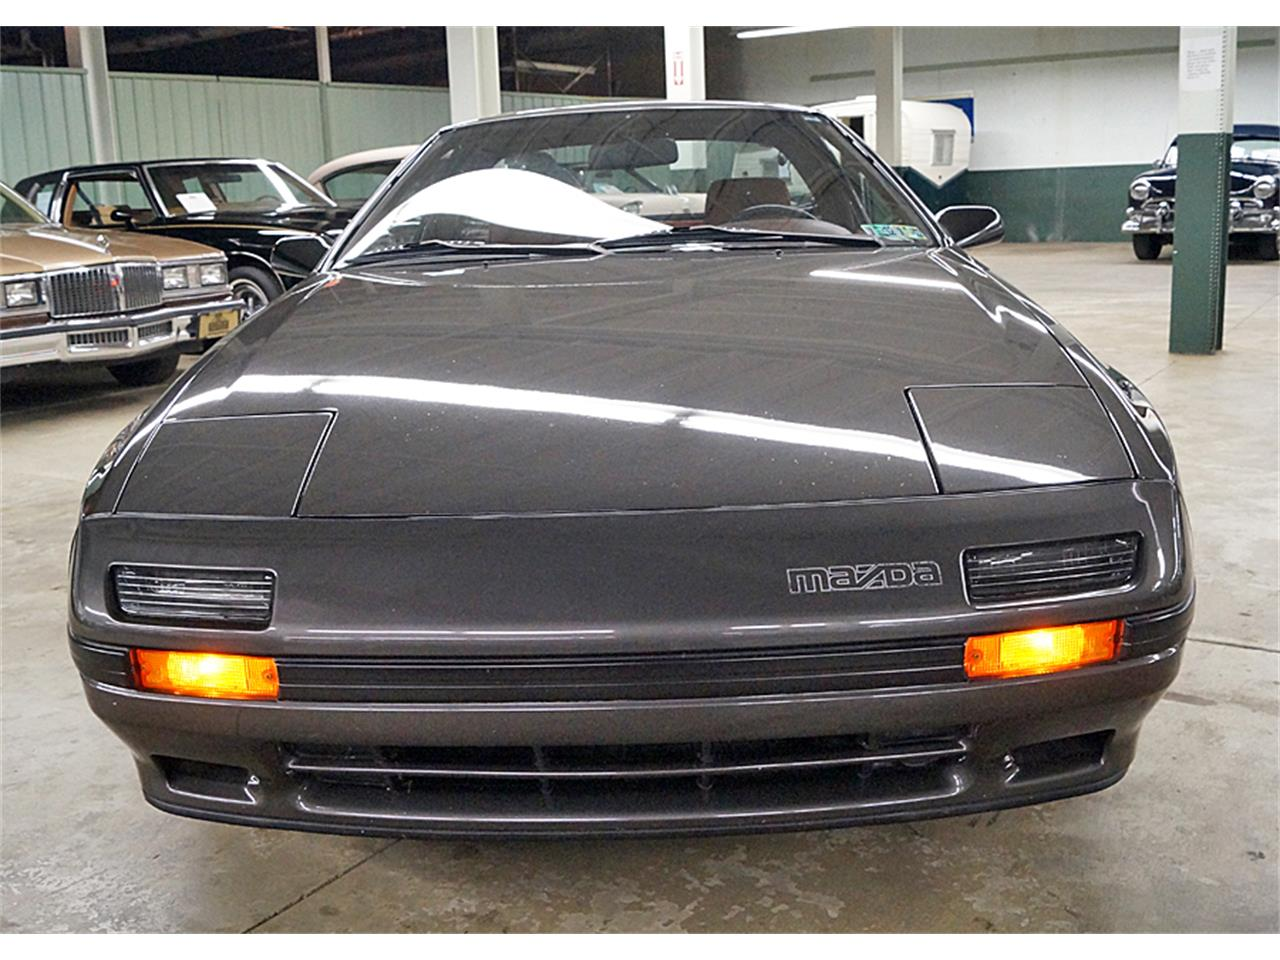 1987 mazda rx se rx7 classic financing inspection insurance transport canton ohio